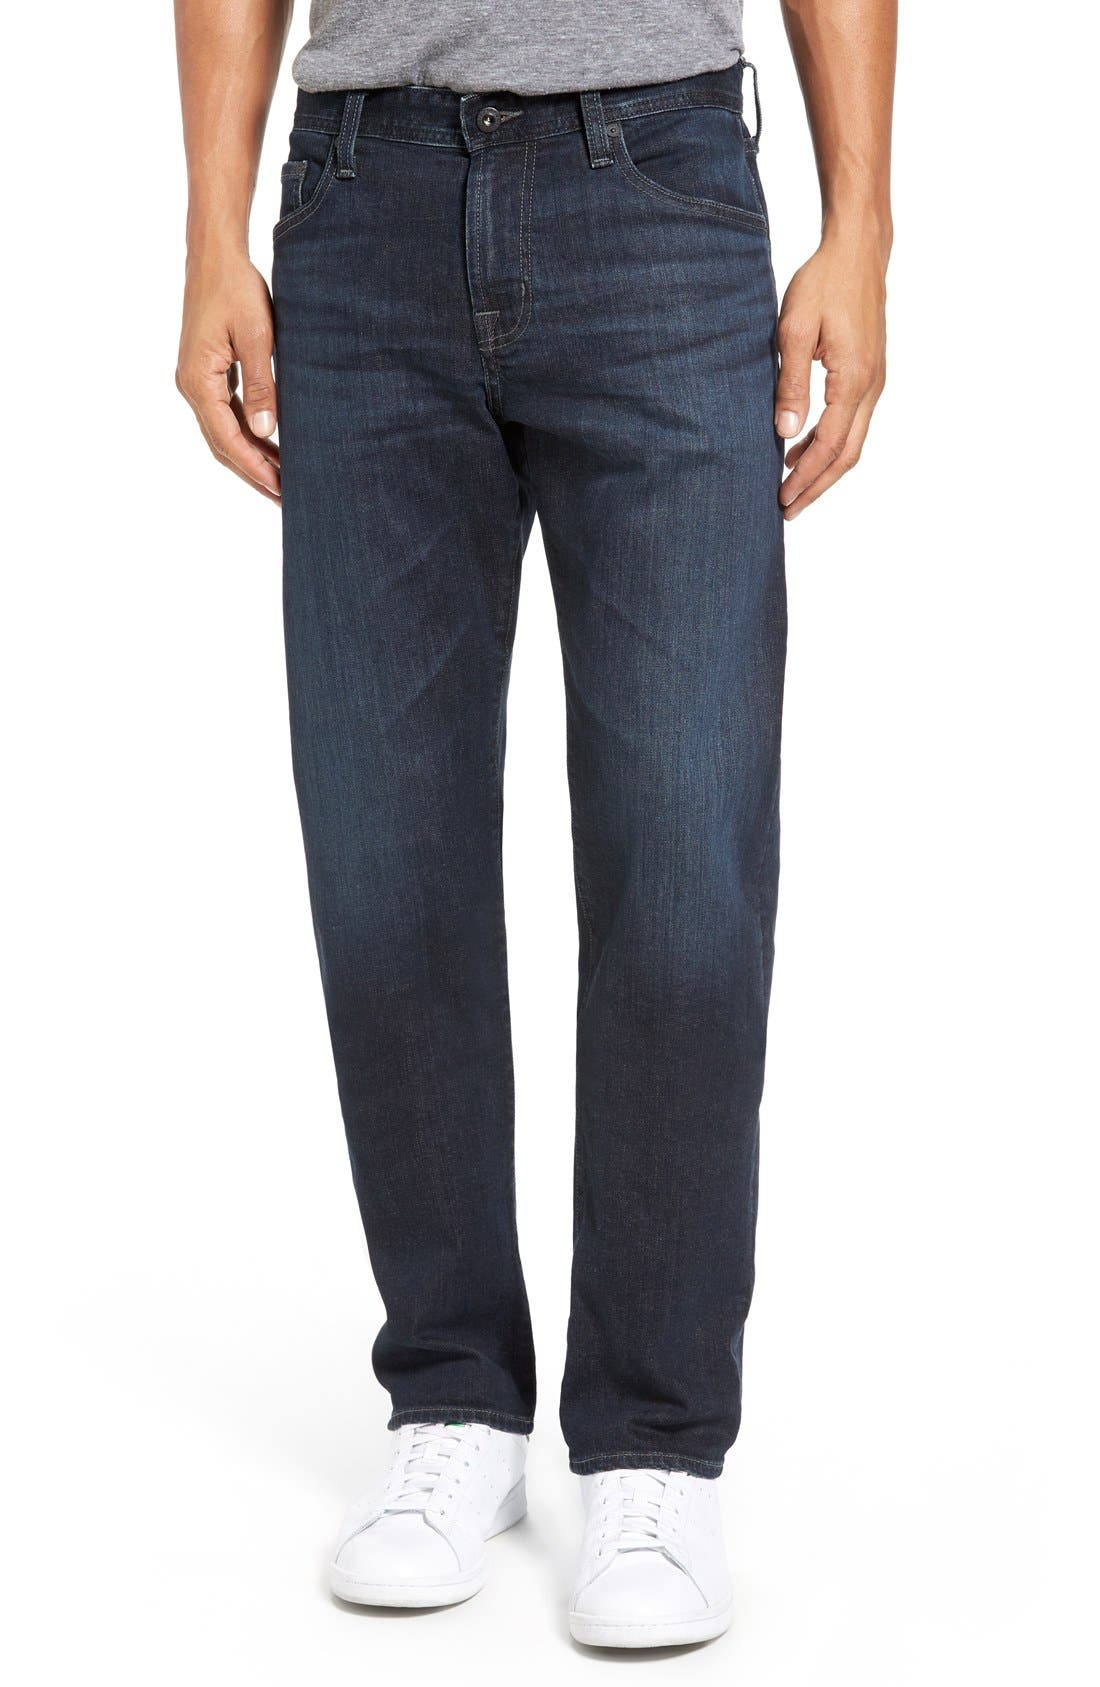 Graduate Slim Straight Leg Jeans,                         Main,                         color, Rockwell